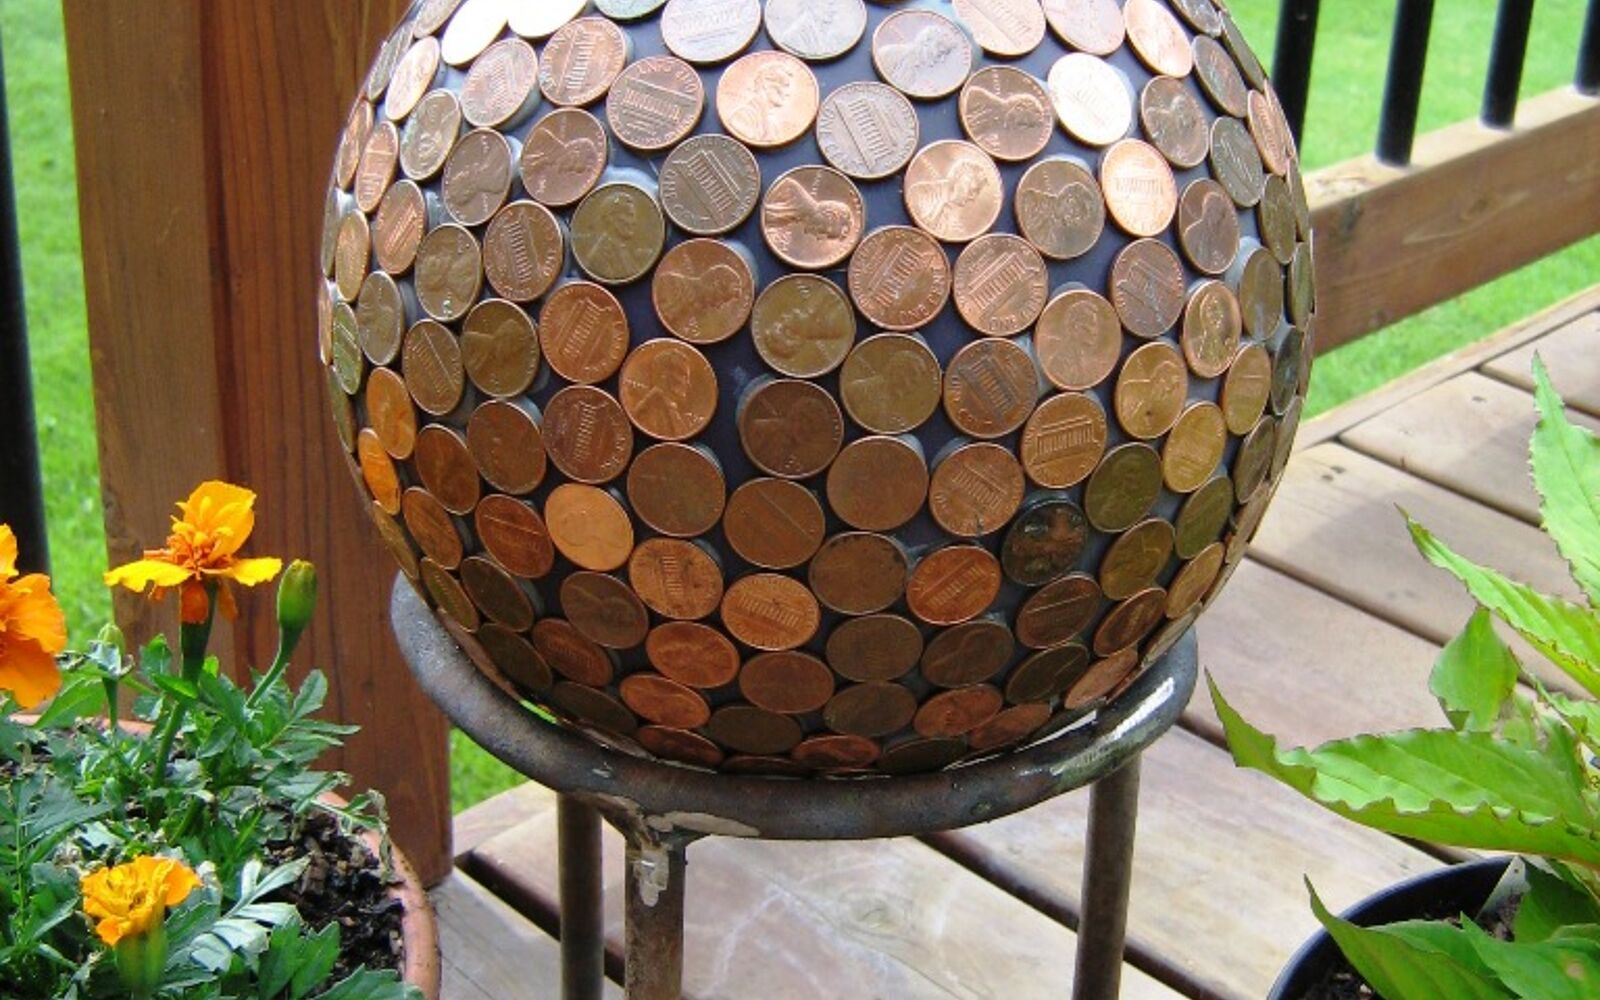 s 30 ways for you to style your garden, Repurpose Your Pennies For A Globe